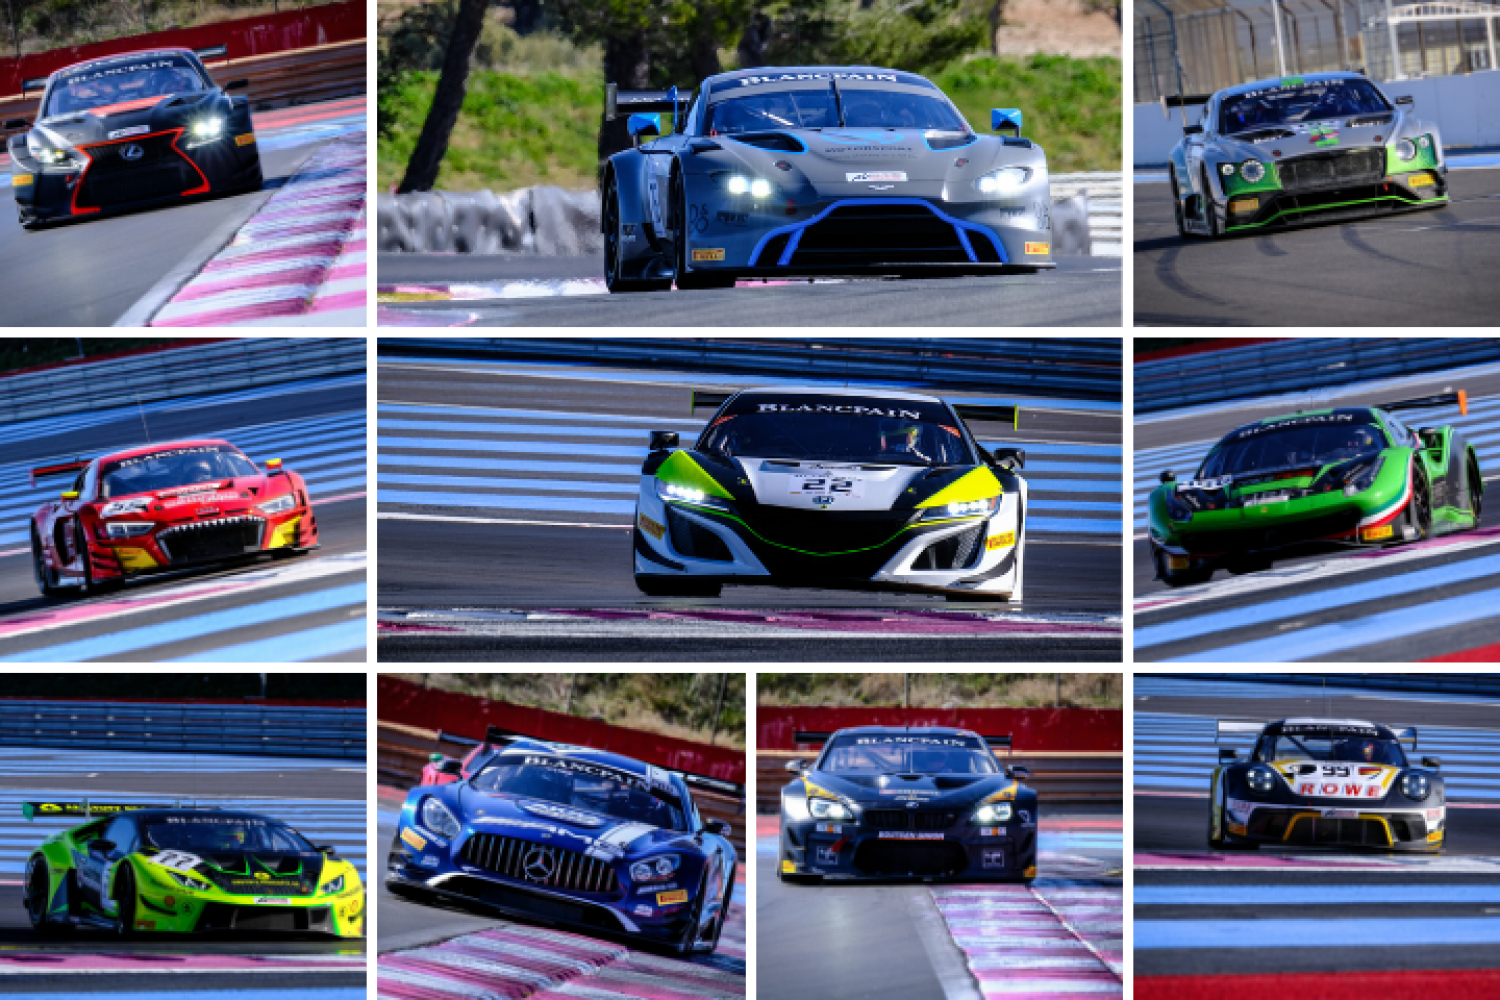 Blancpain GT Series contenders complete extensive pre-season running during official test days